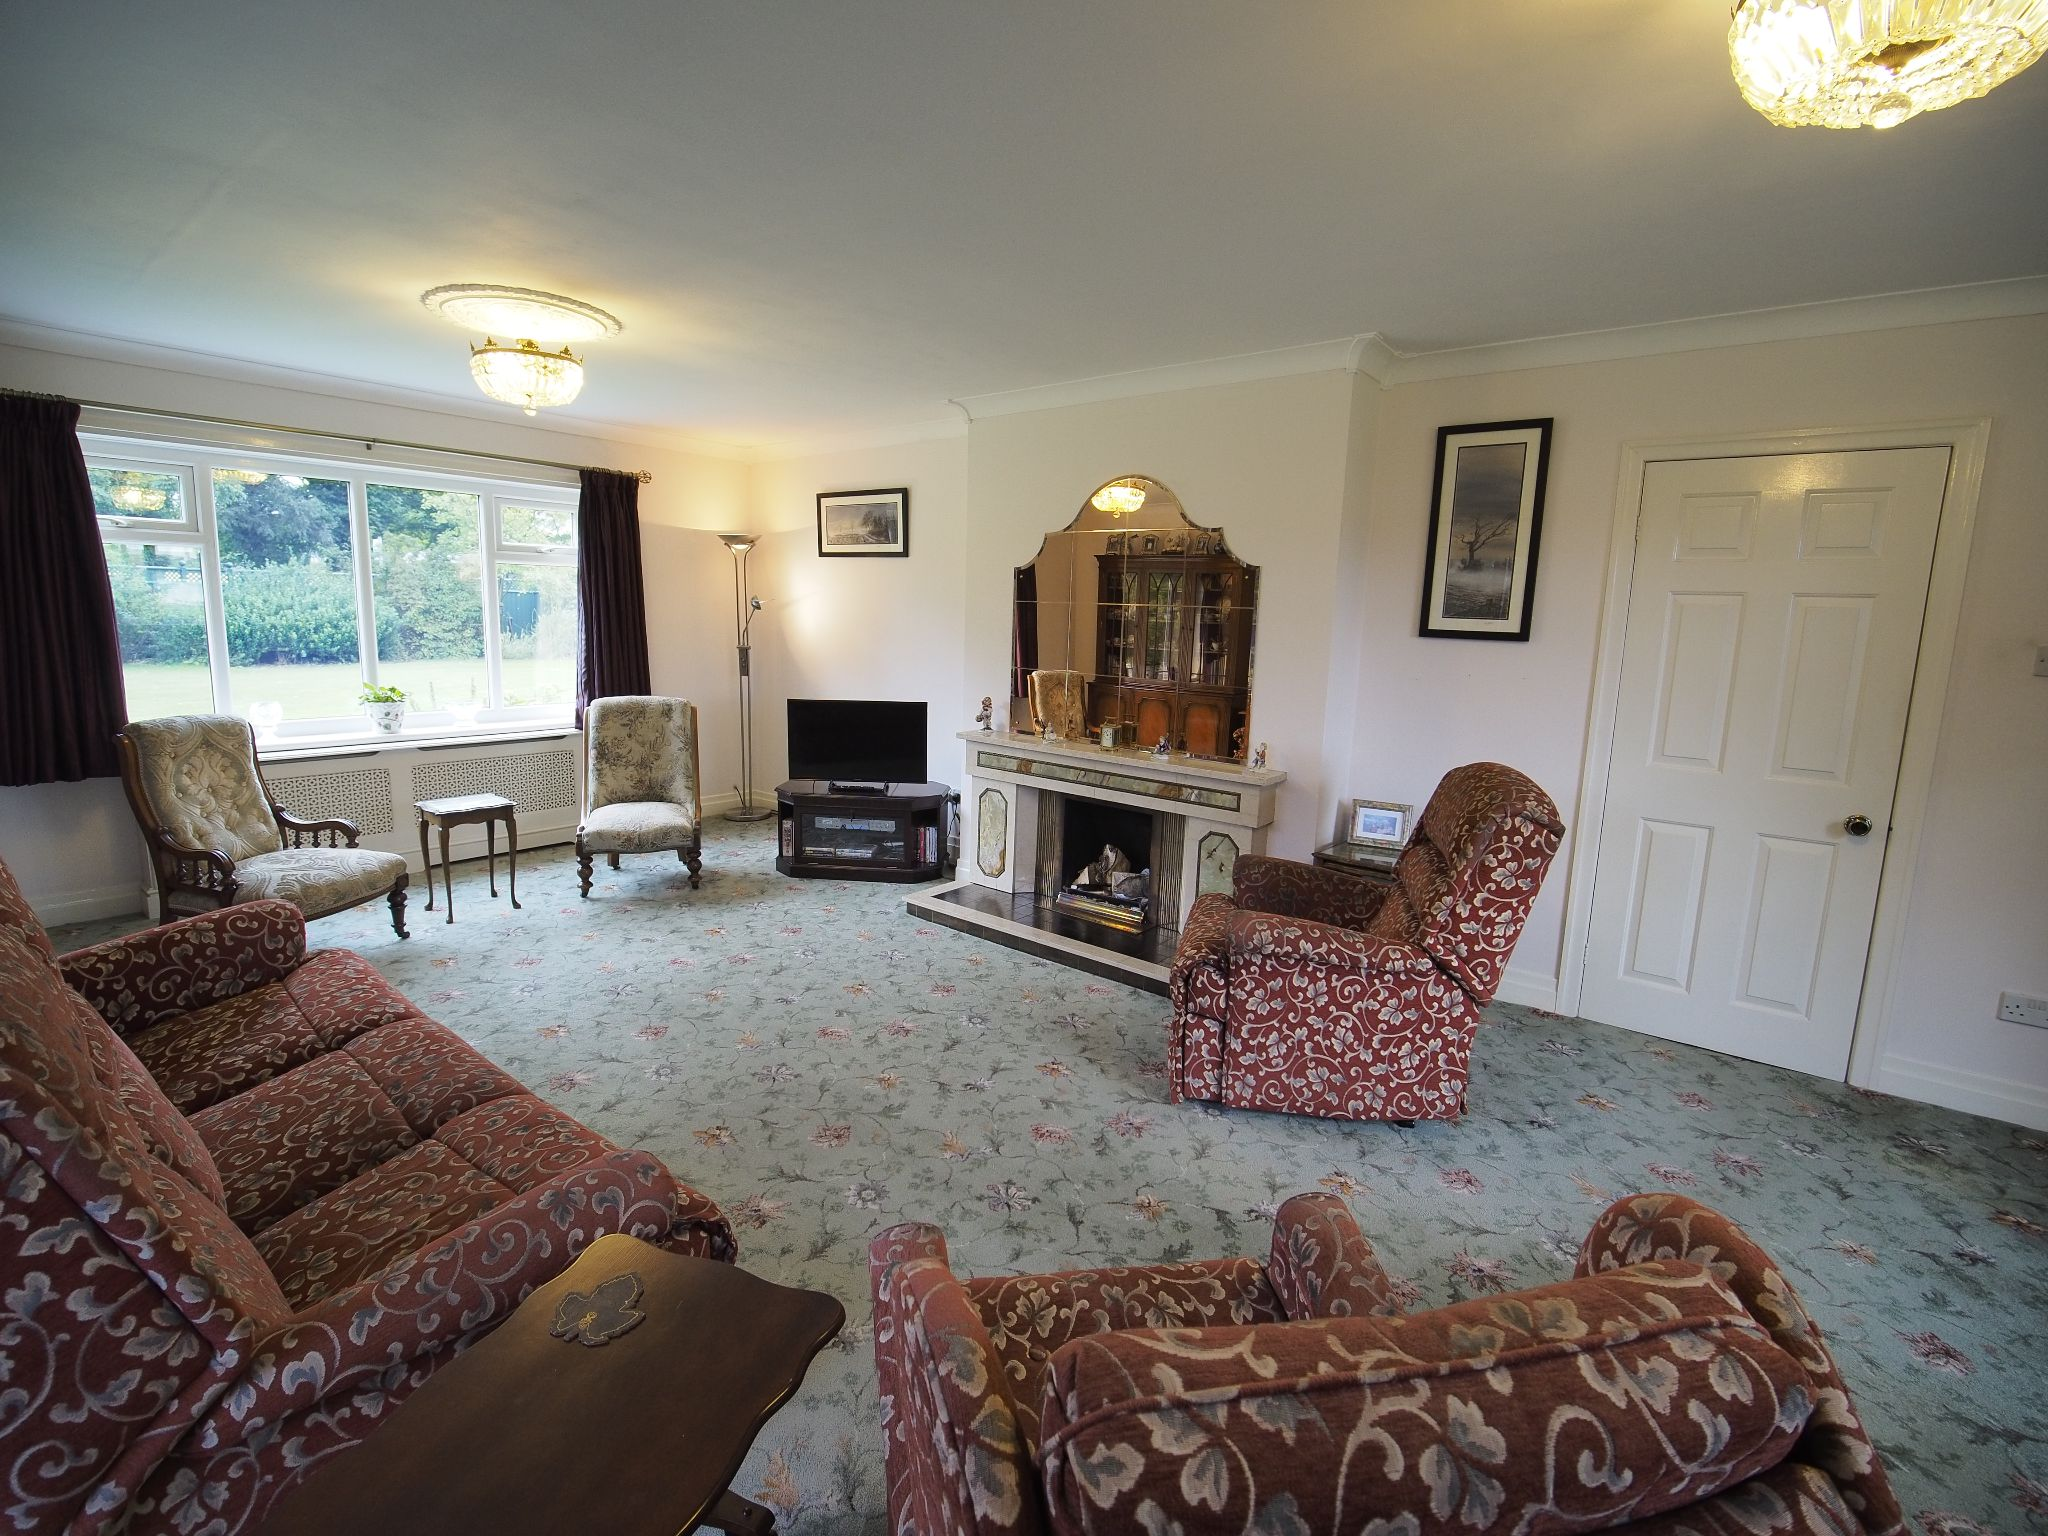 4 bedroom detached house For Sale in Willington - Lounge with coal fire.